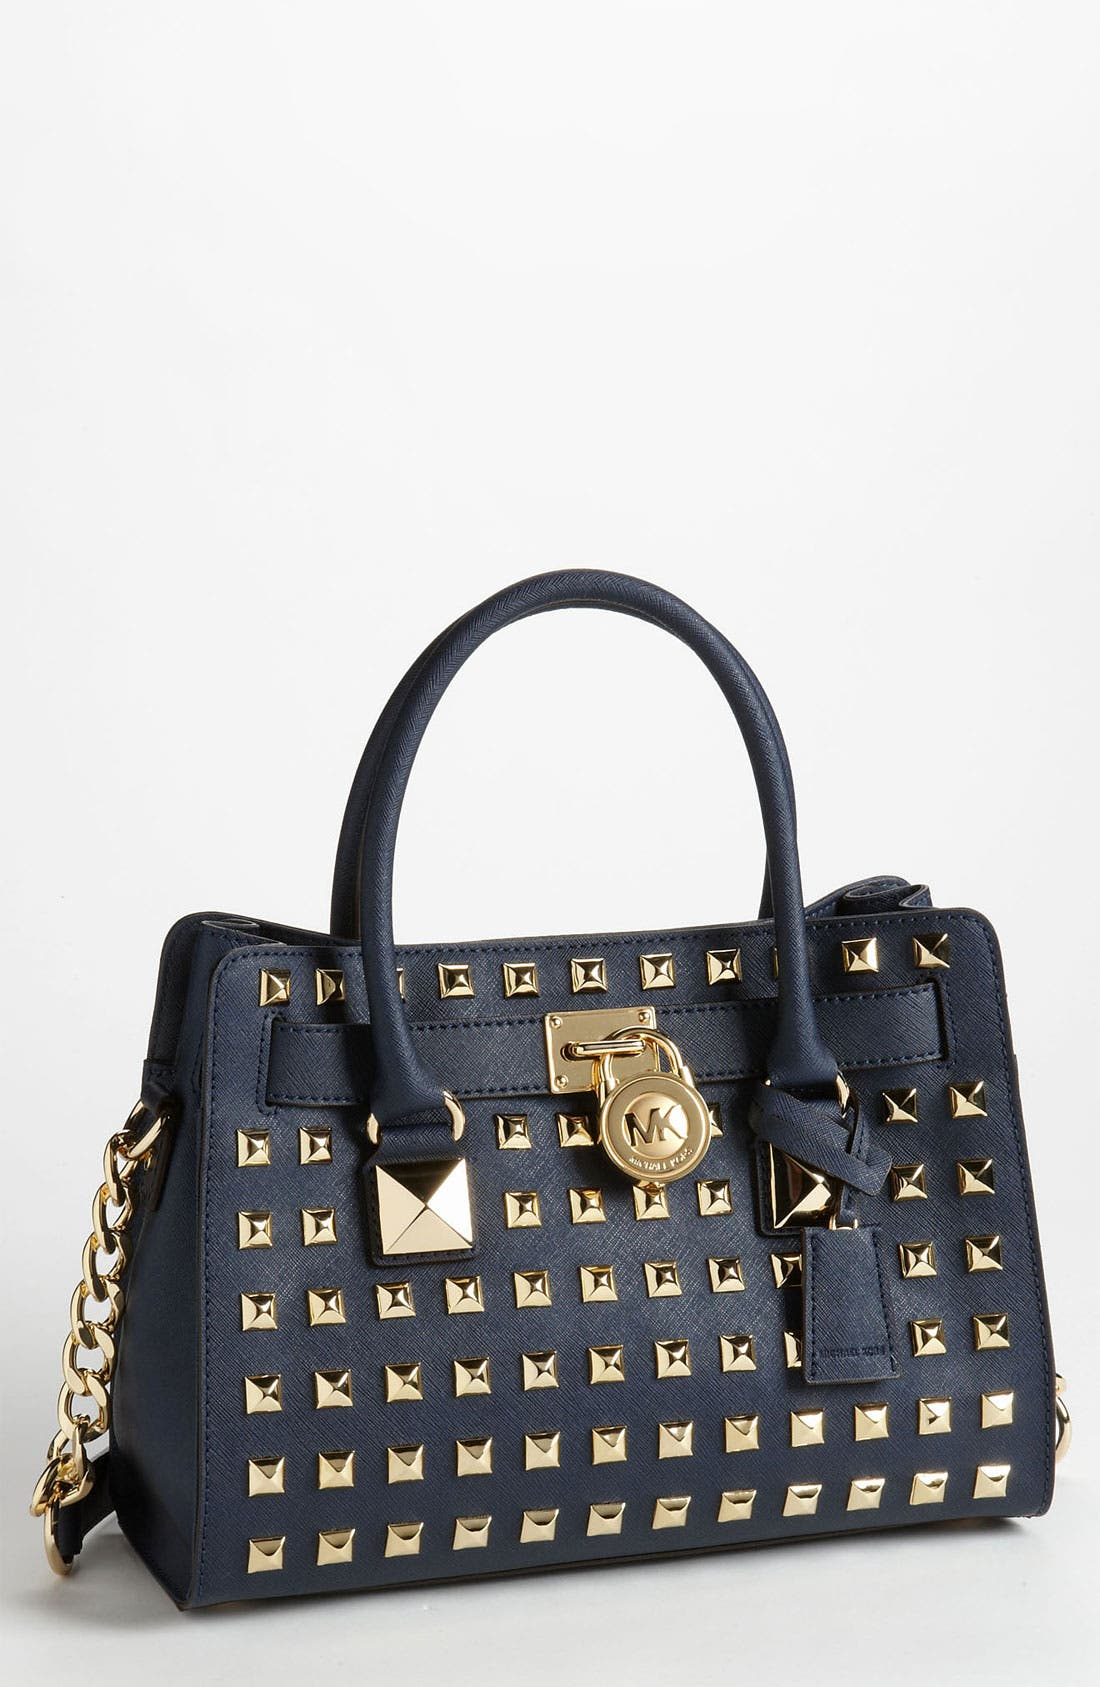 Main Image - MICHAEL Michael Kors 'Hamilton' Studded Leather Satchel